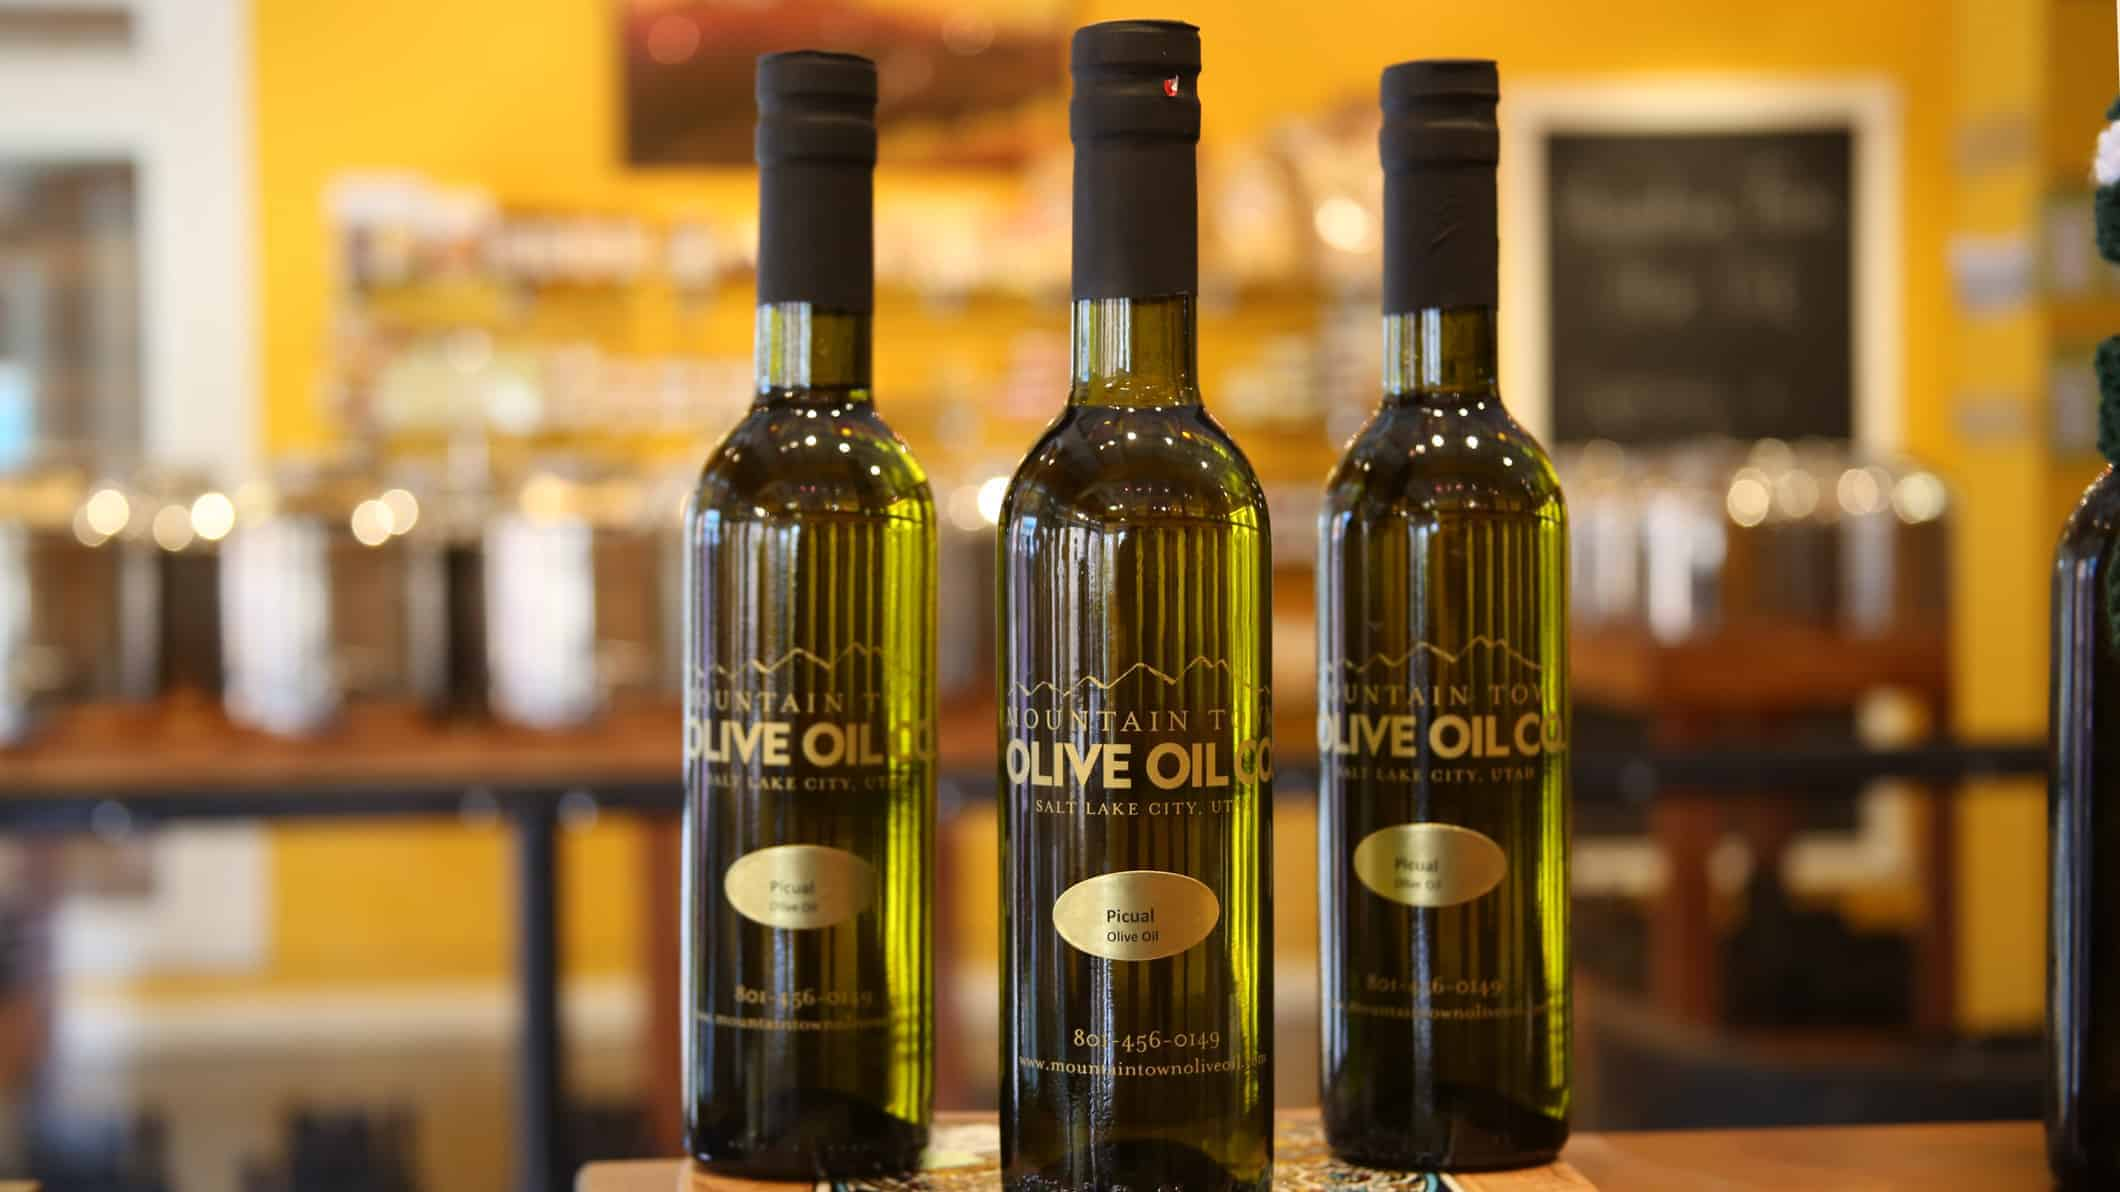 bottles of mountain town olive oil